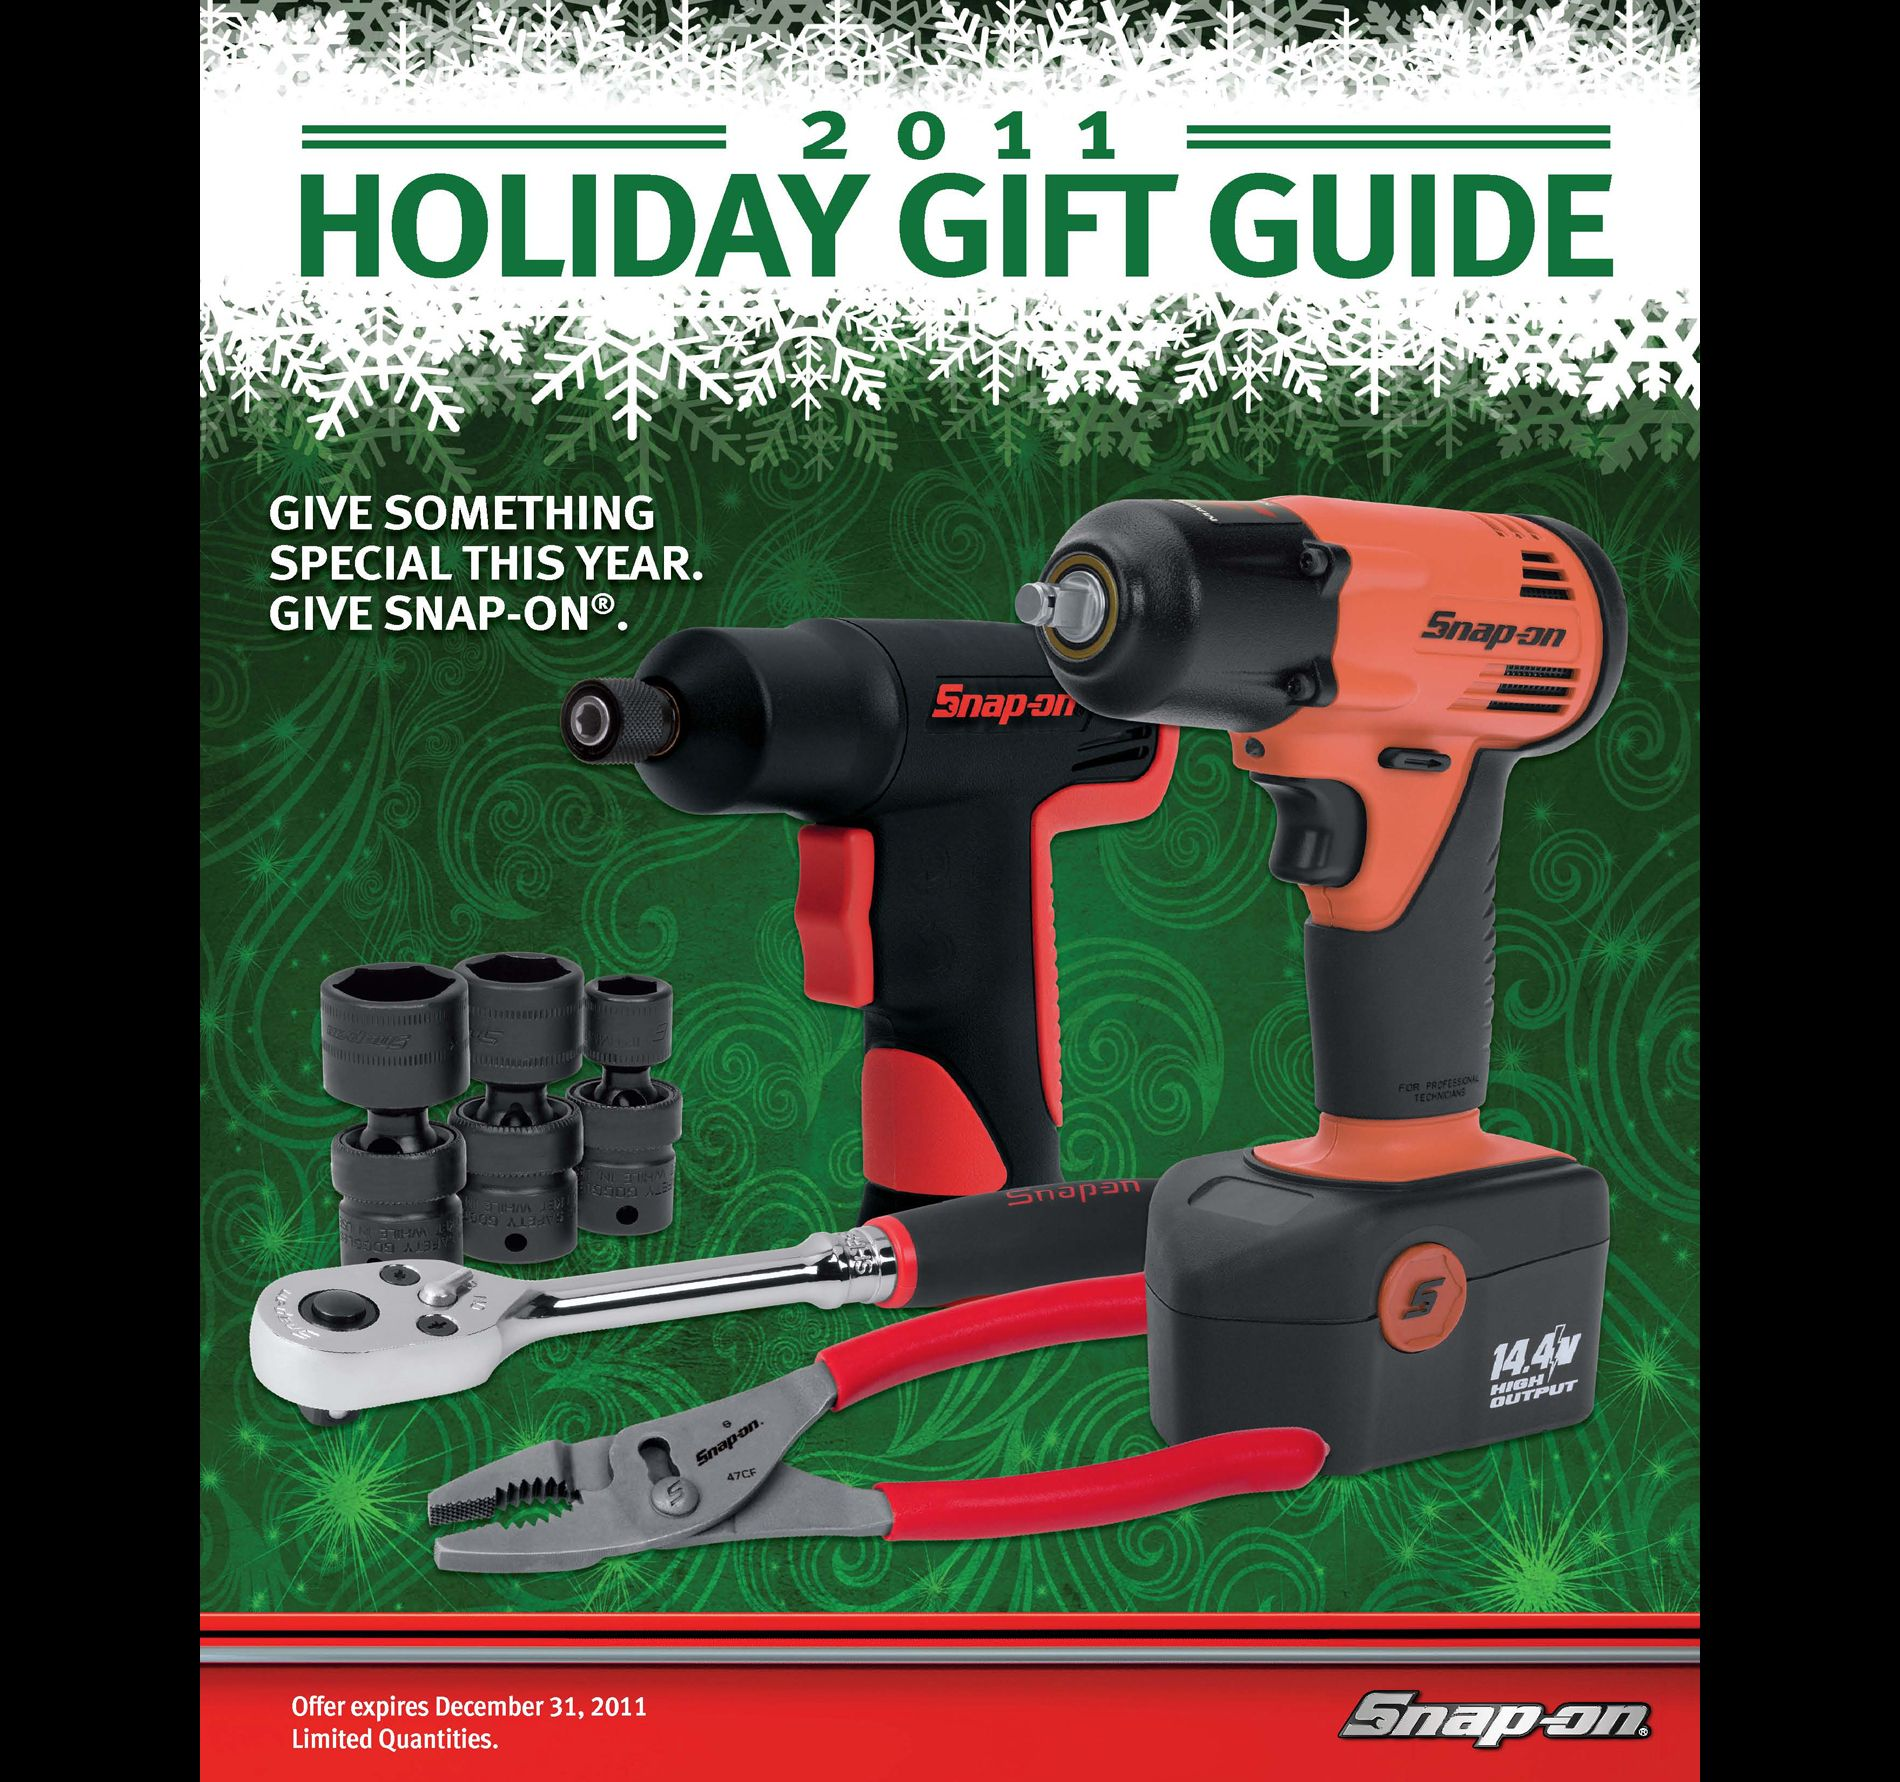 Snap-On Holiday Gift Guide